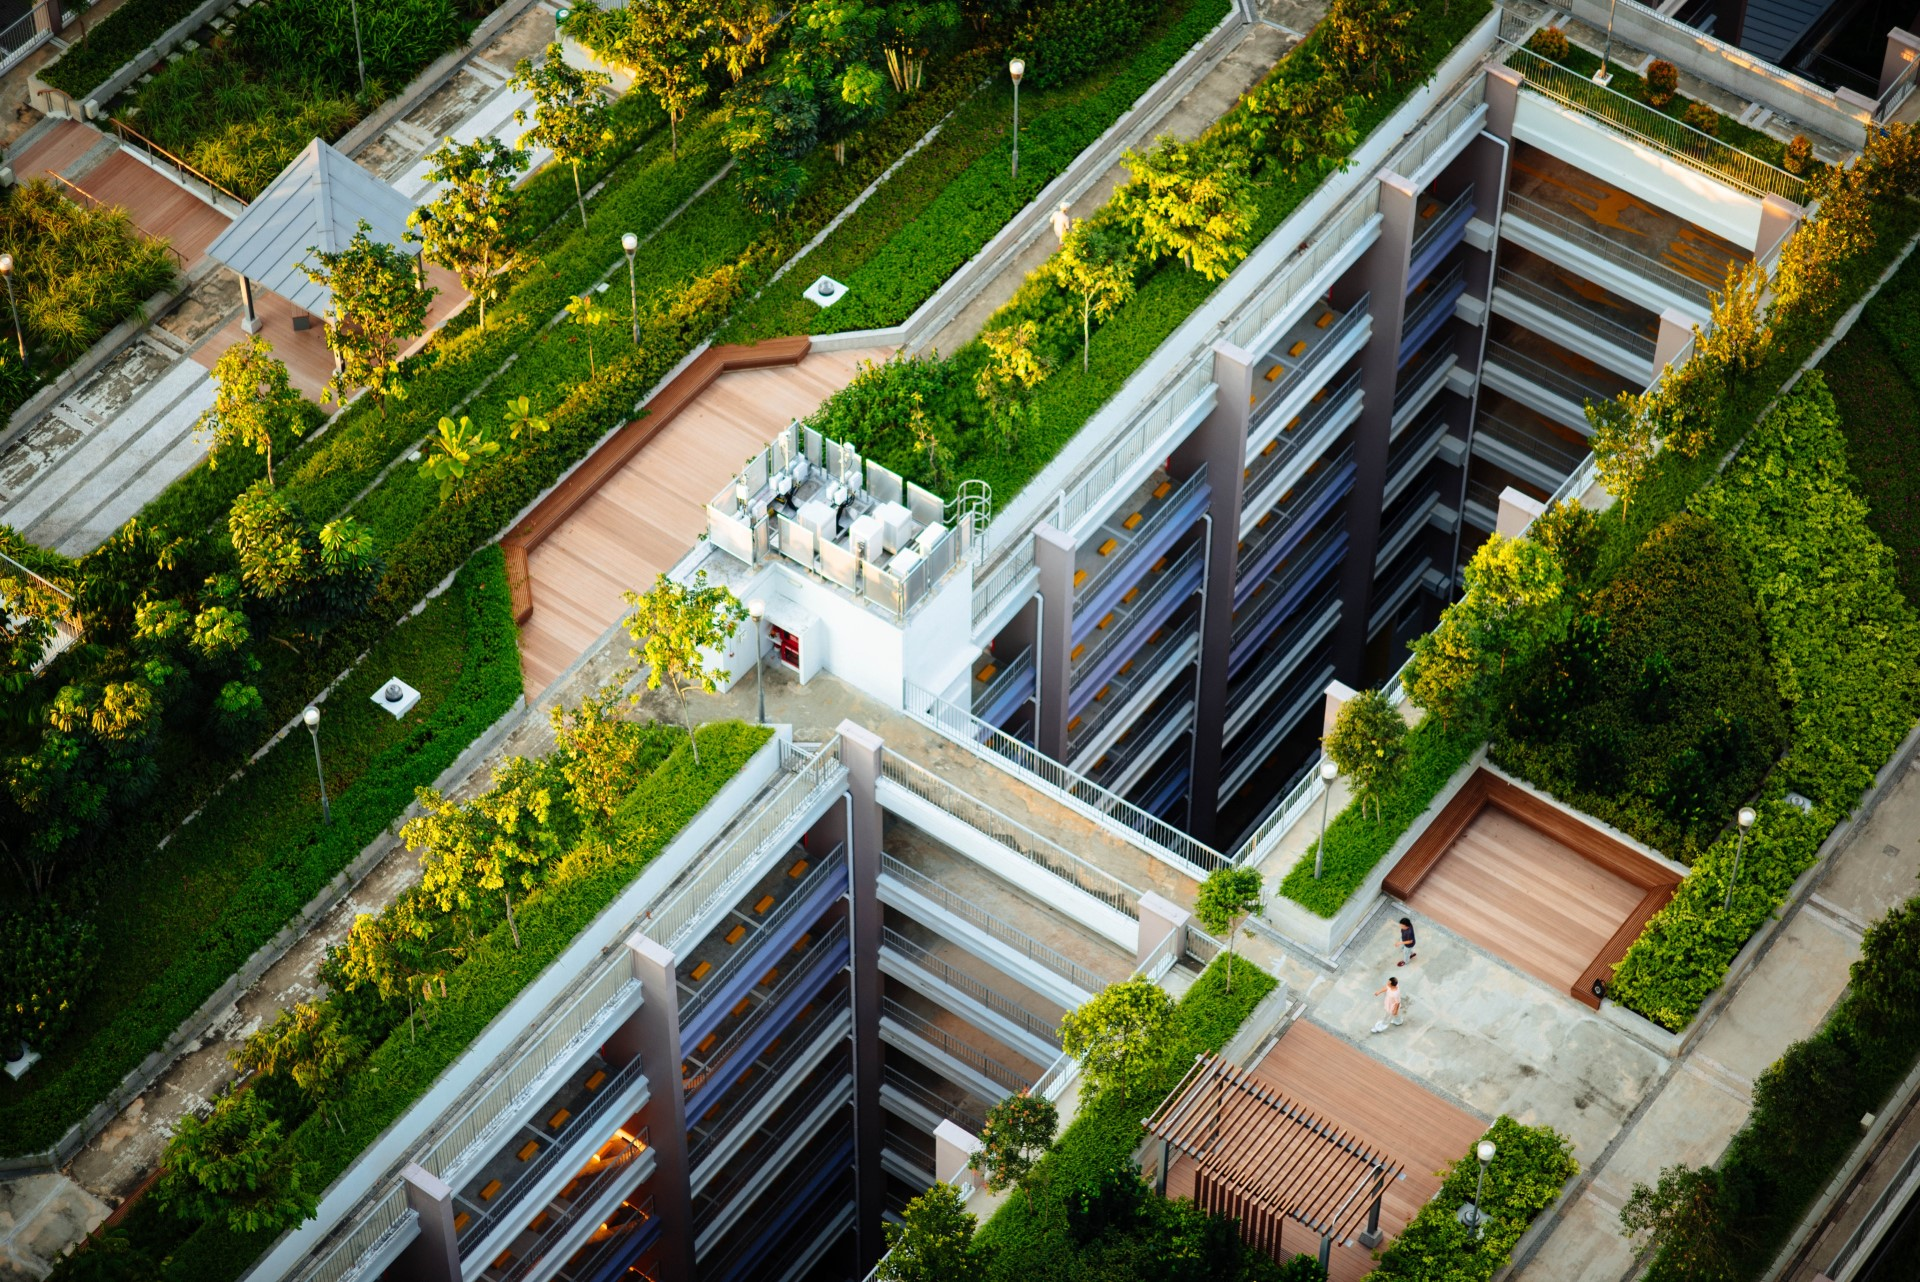 How to Maintain Green Infrastructure for Peak Performance Year Round | A green roof or other green system needs year-round help to do well.